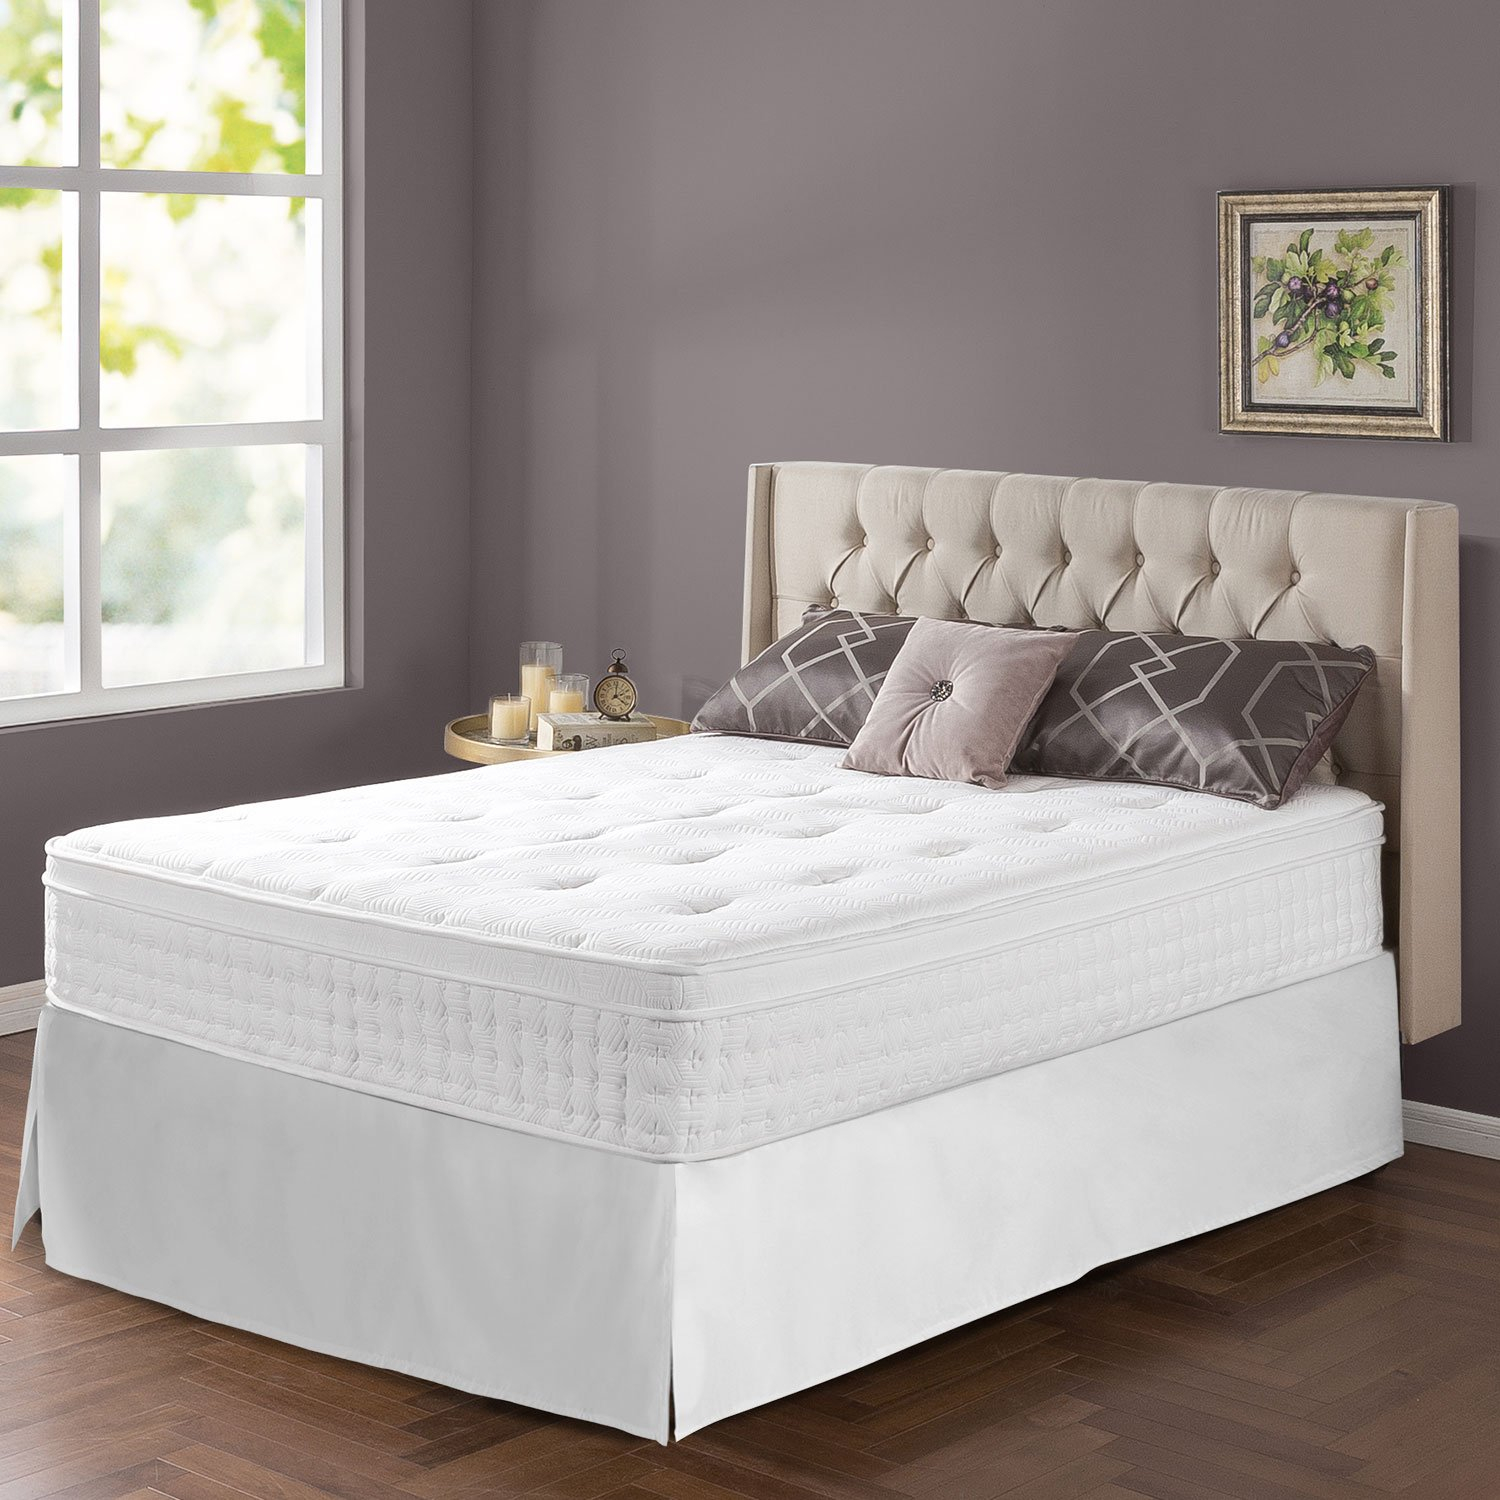 Zinus Night Therapy 12 In Euro Box Top Spring Mattress Bed